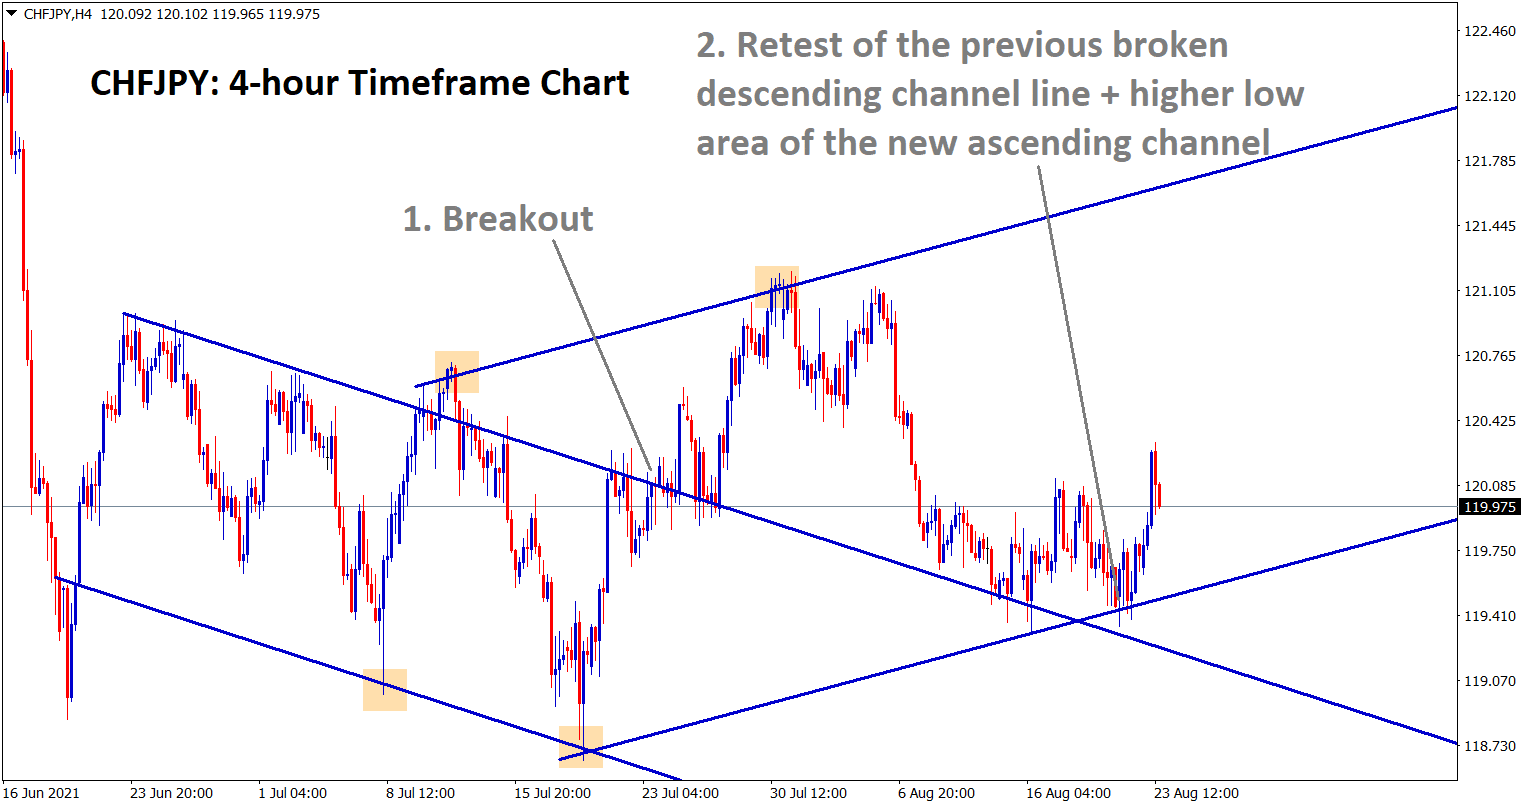 CHFJPY rebound from the retest zone of the previous broken descending channel line and the higher low area of new ascending channel